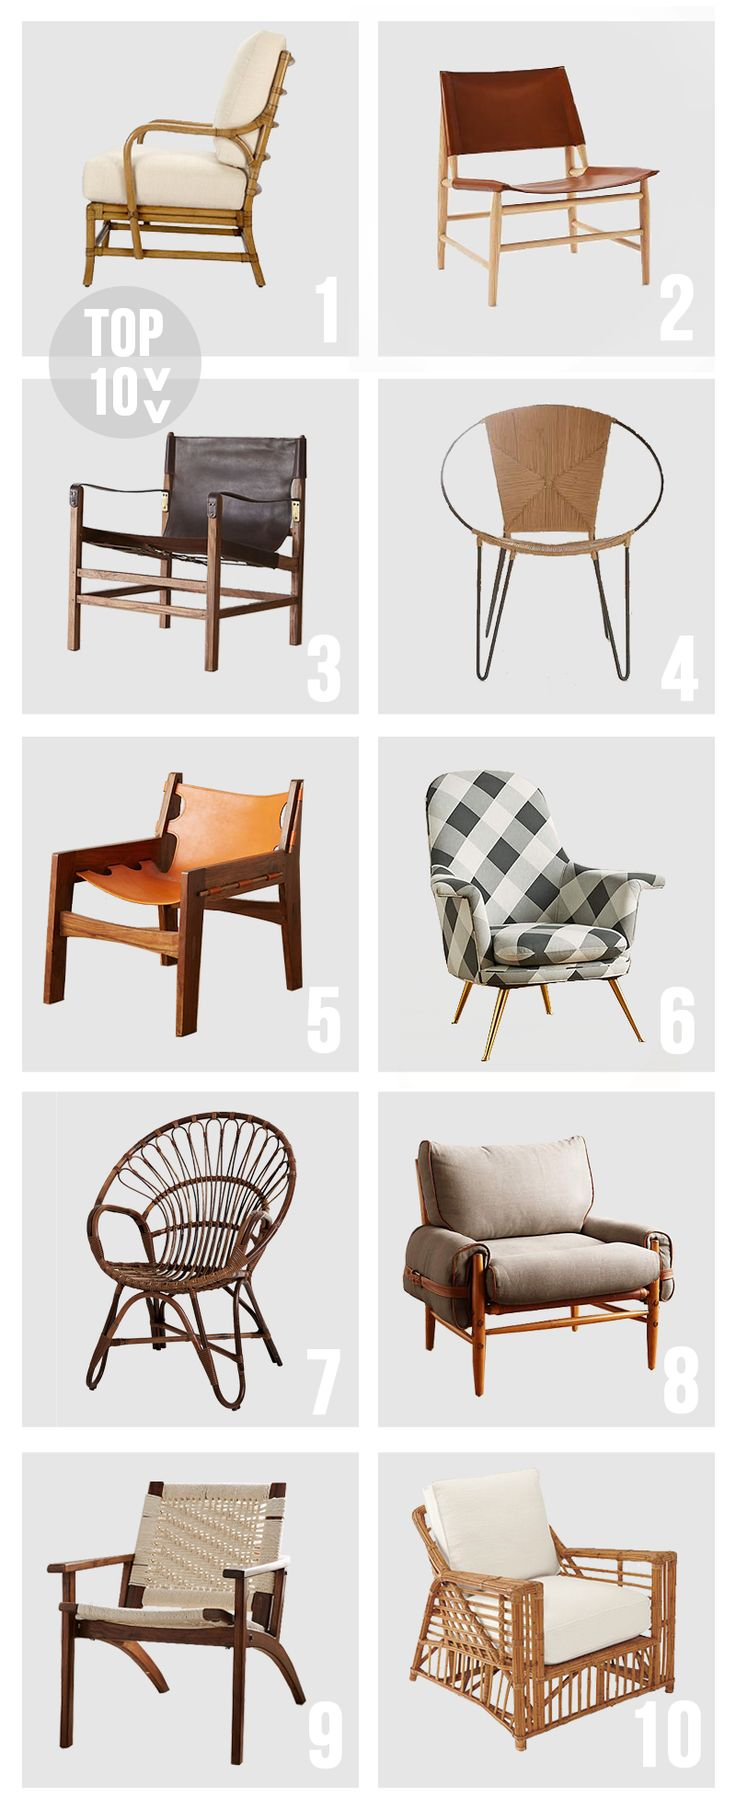 Living room furniture names - Top 10 Accent Chairs Amber Interiors Living Roomyour Namei